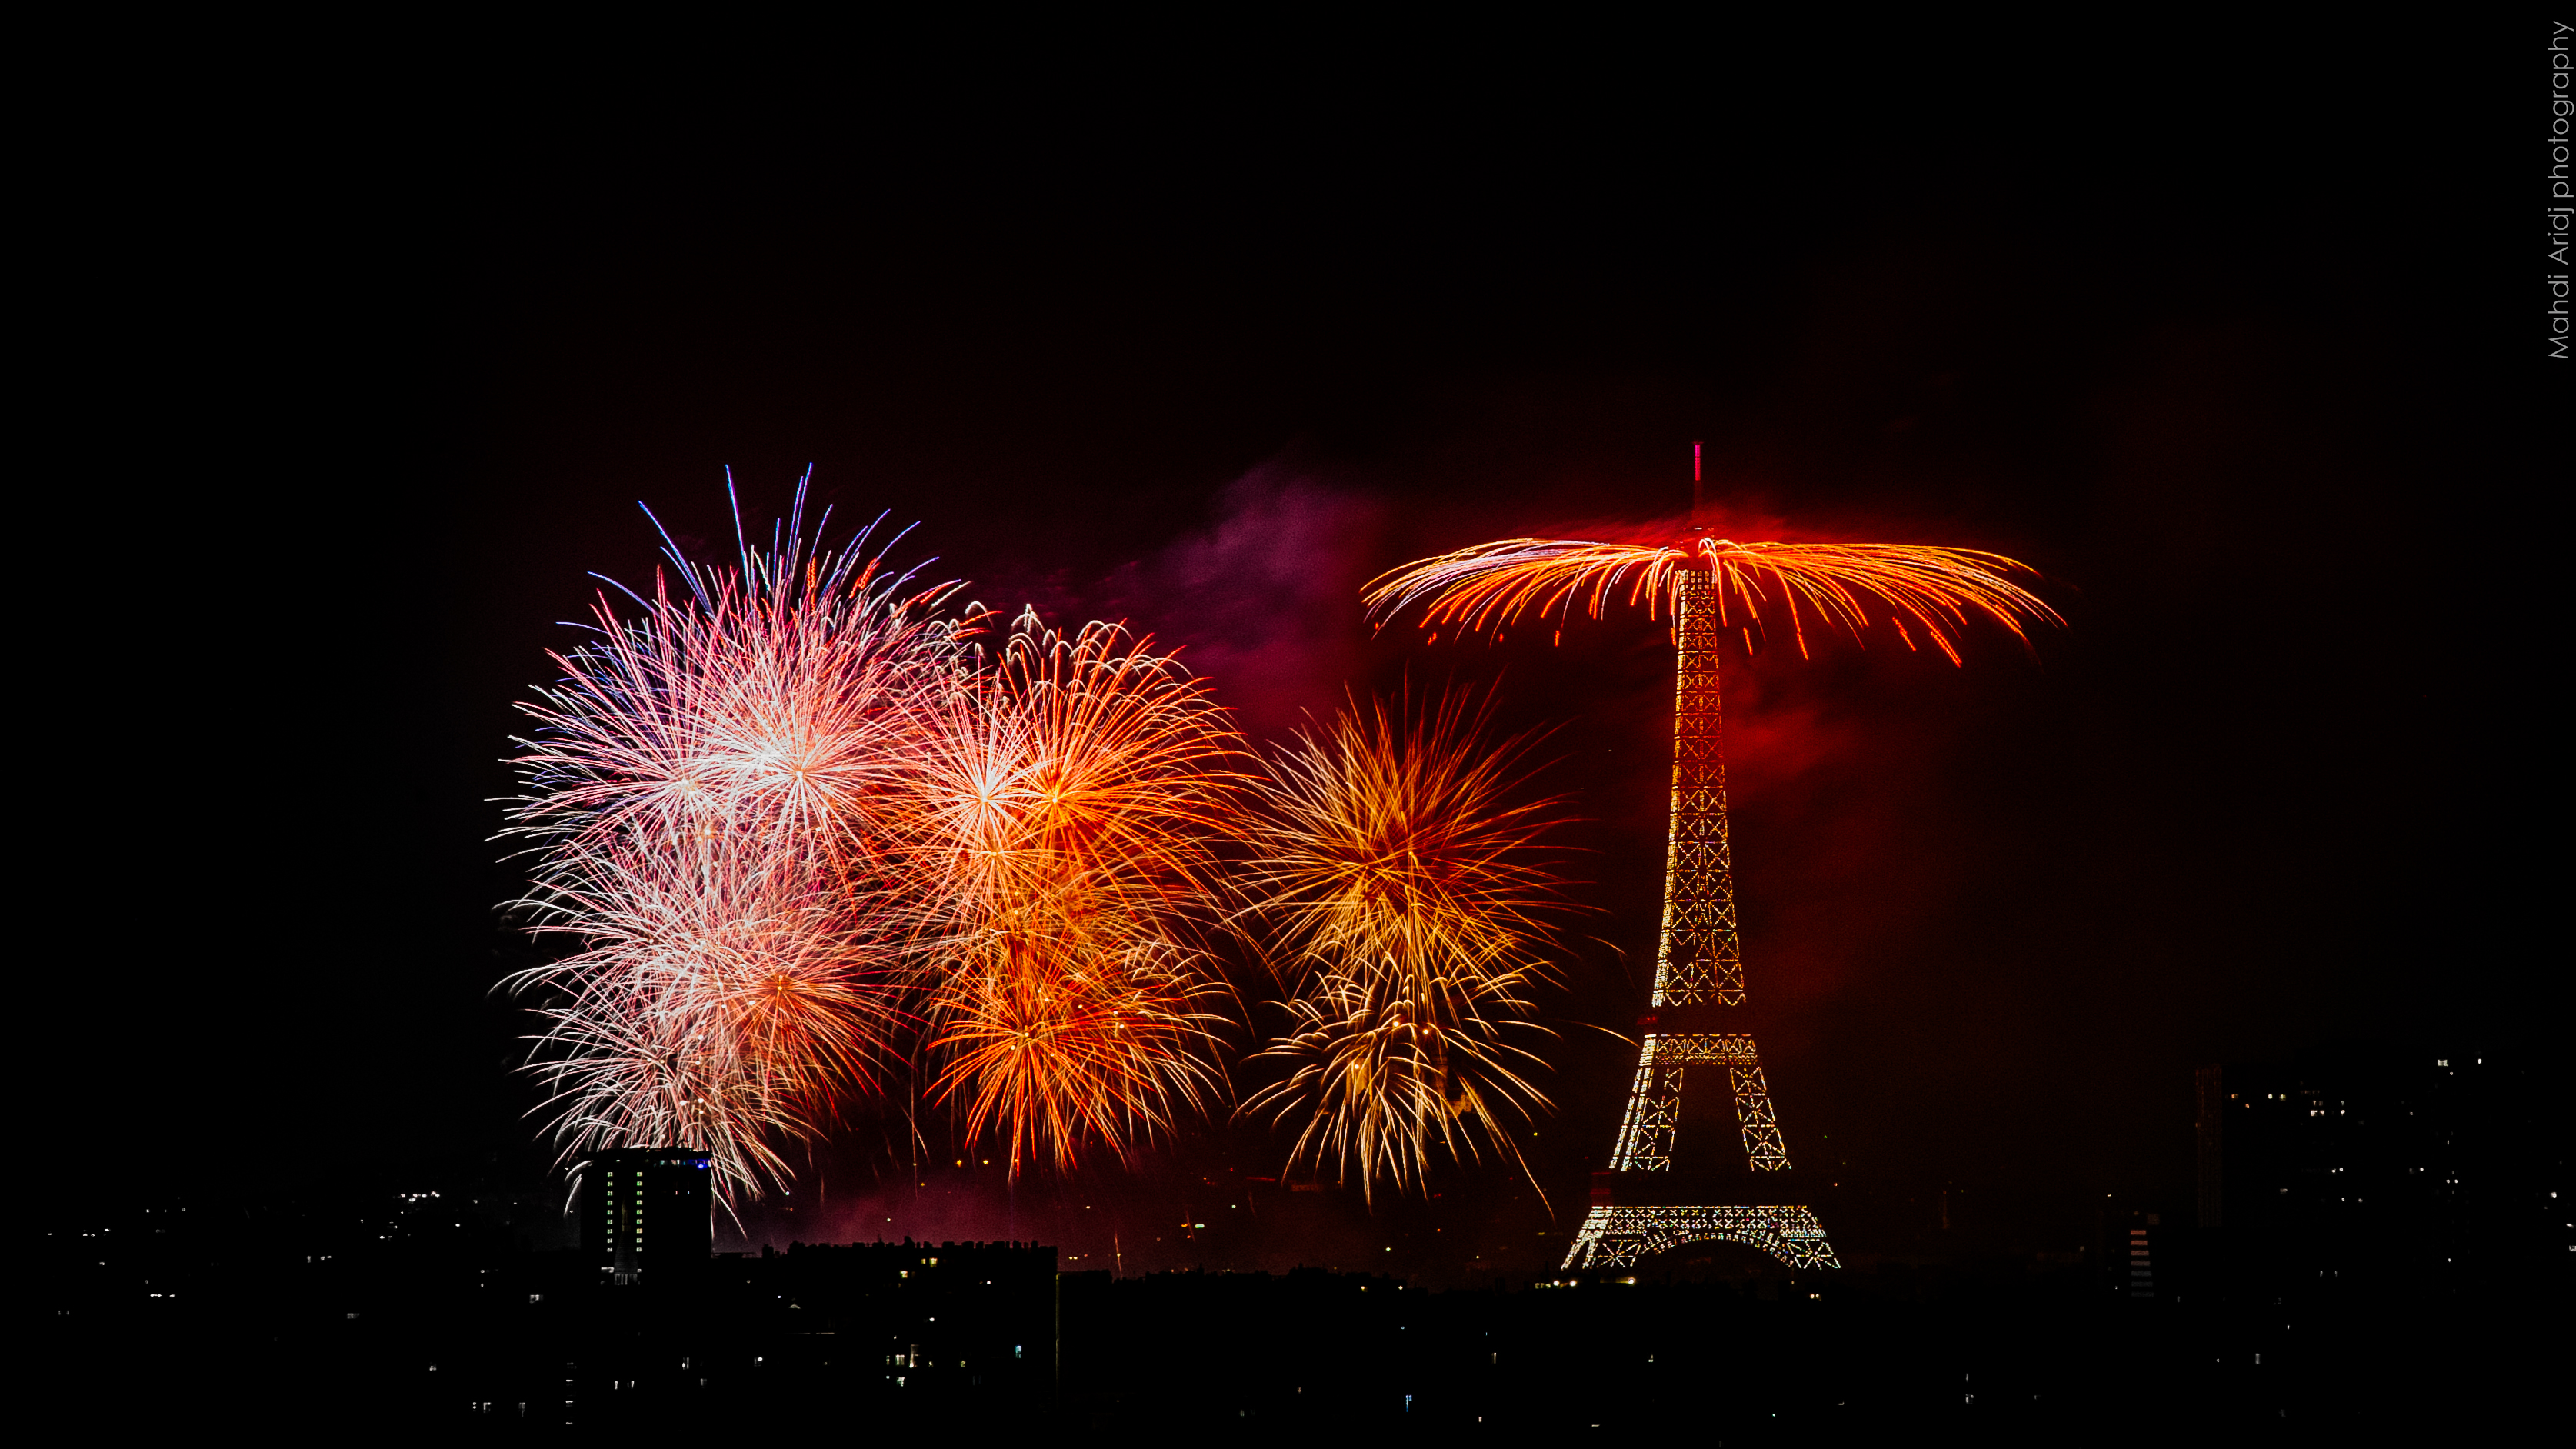 Fireworks of the Bastille day   Paris   Mahdi Aridj Photography Feu d artifice du 14 Juillet 2018   Paris 5  Fireworks of the Bastille day